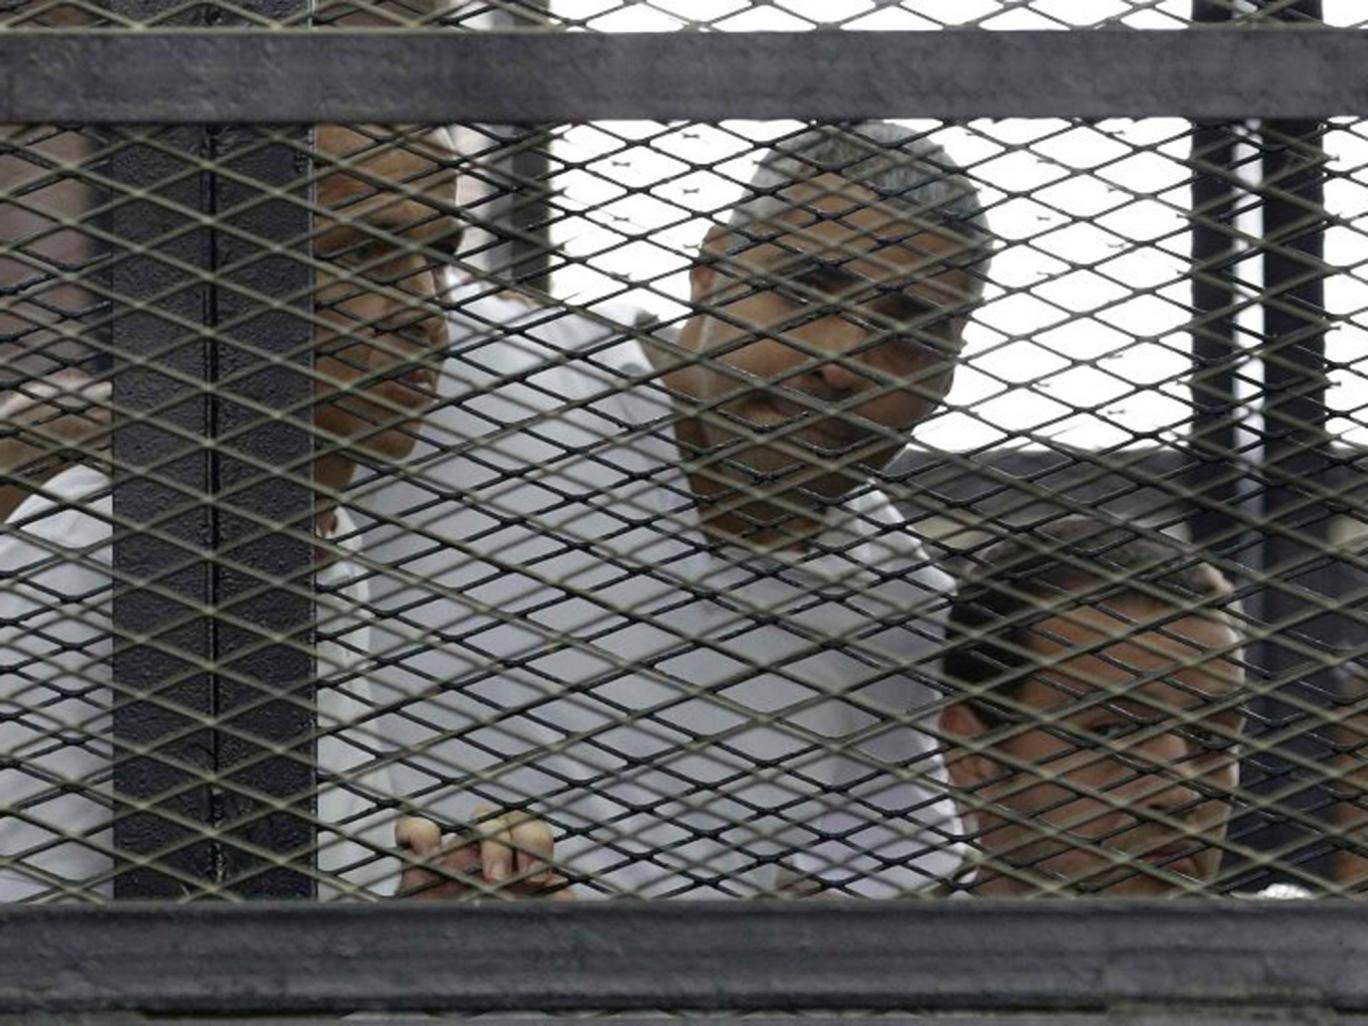 Journalists Peter Greste, left, Mohamed Fahmy,centre, and Baher Mohamed were yesterday jailed for aiding a terrorist organisation. William Hague described the trial as 'unacceptable'